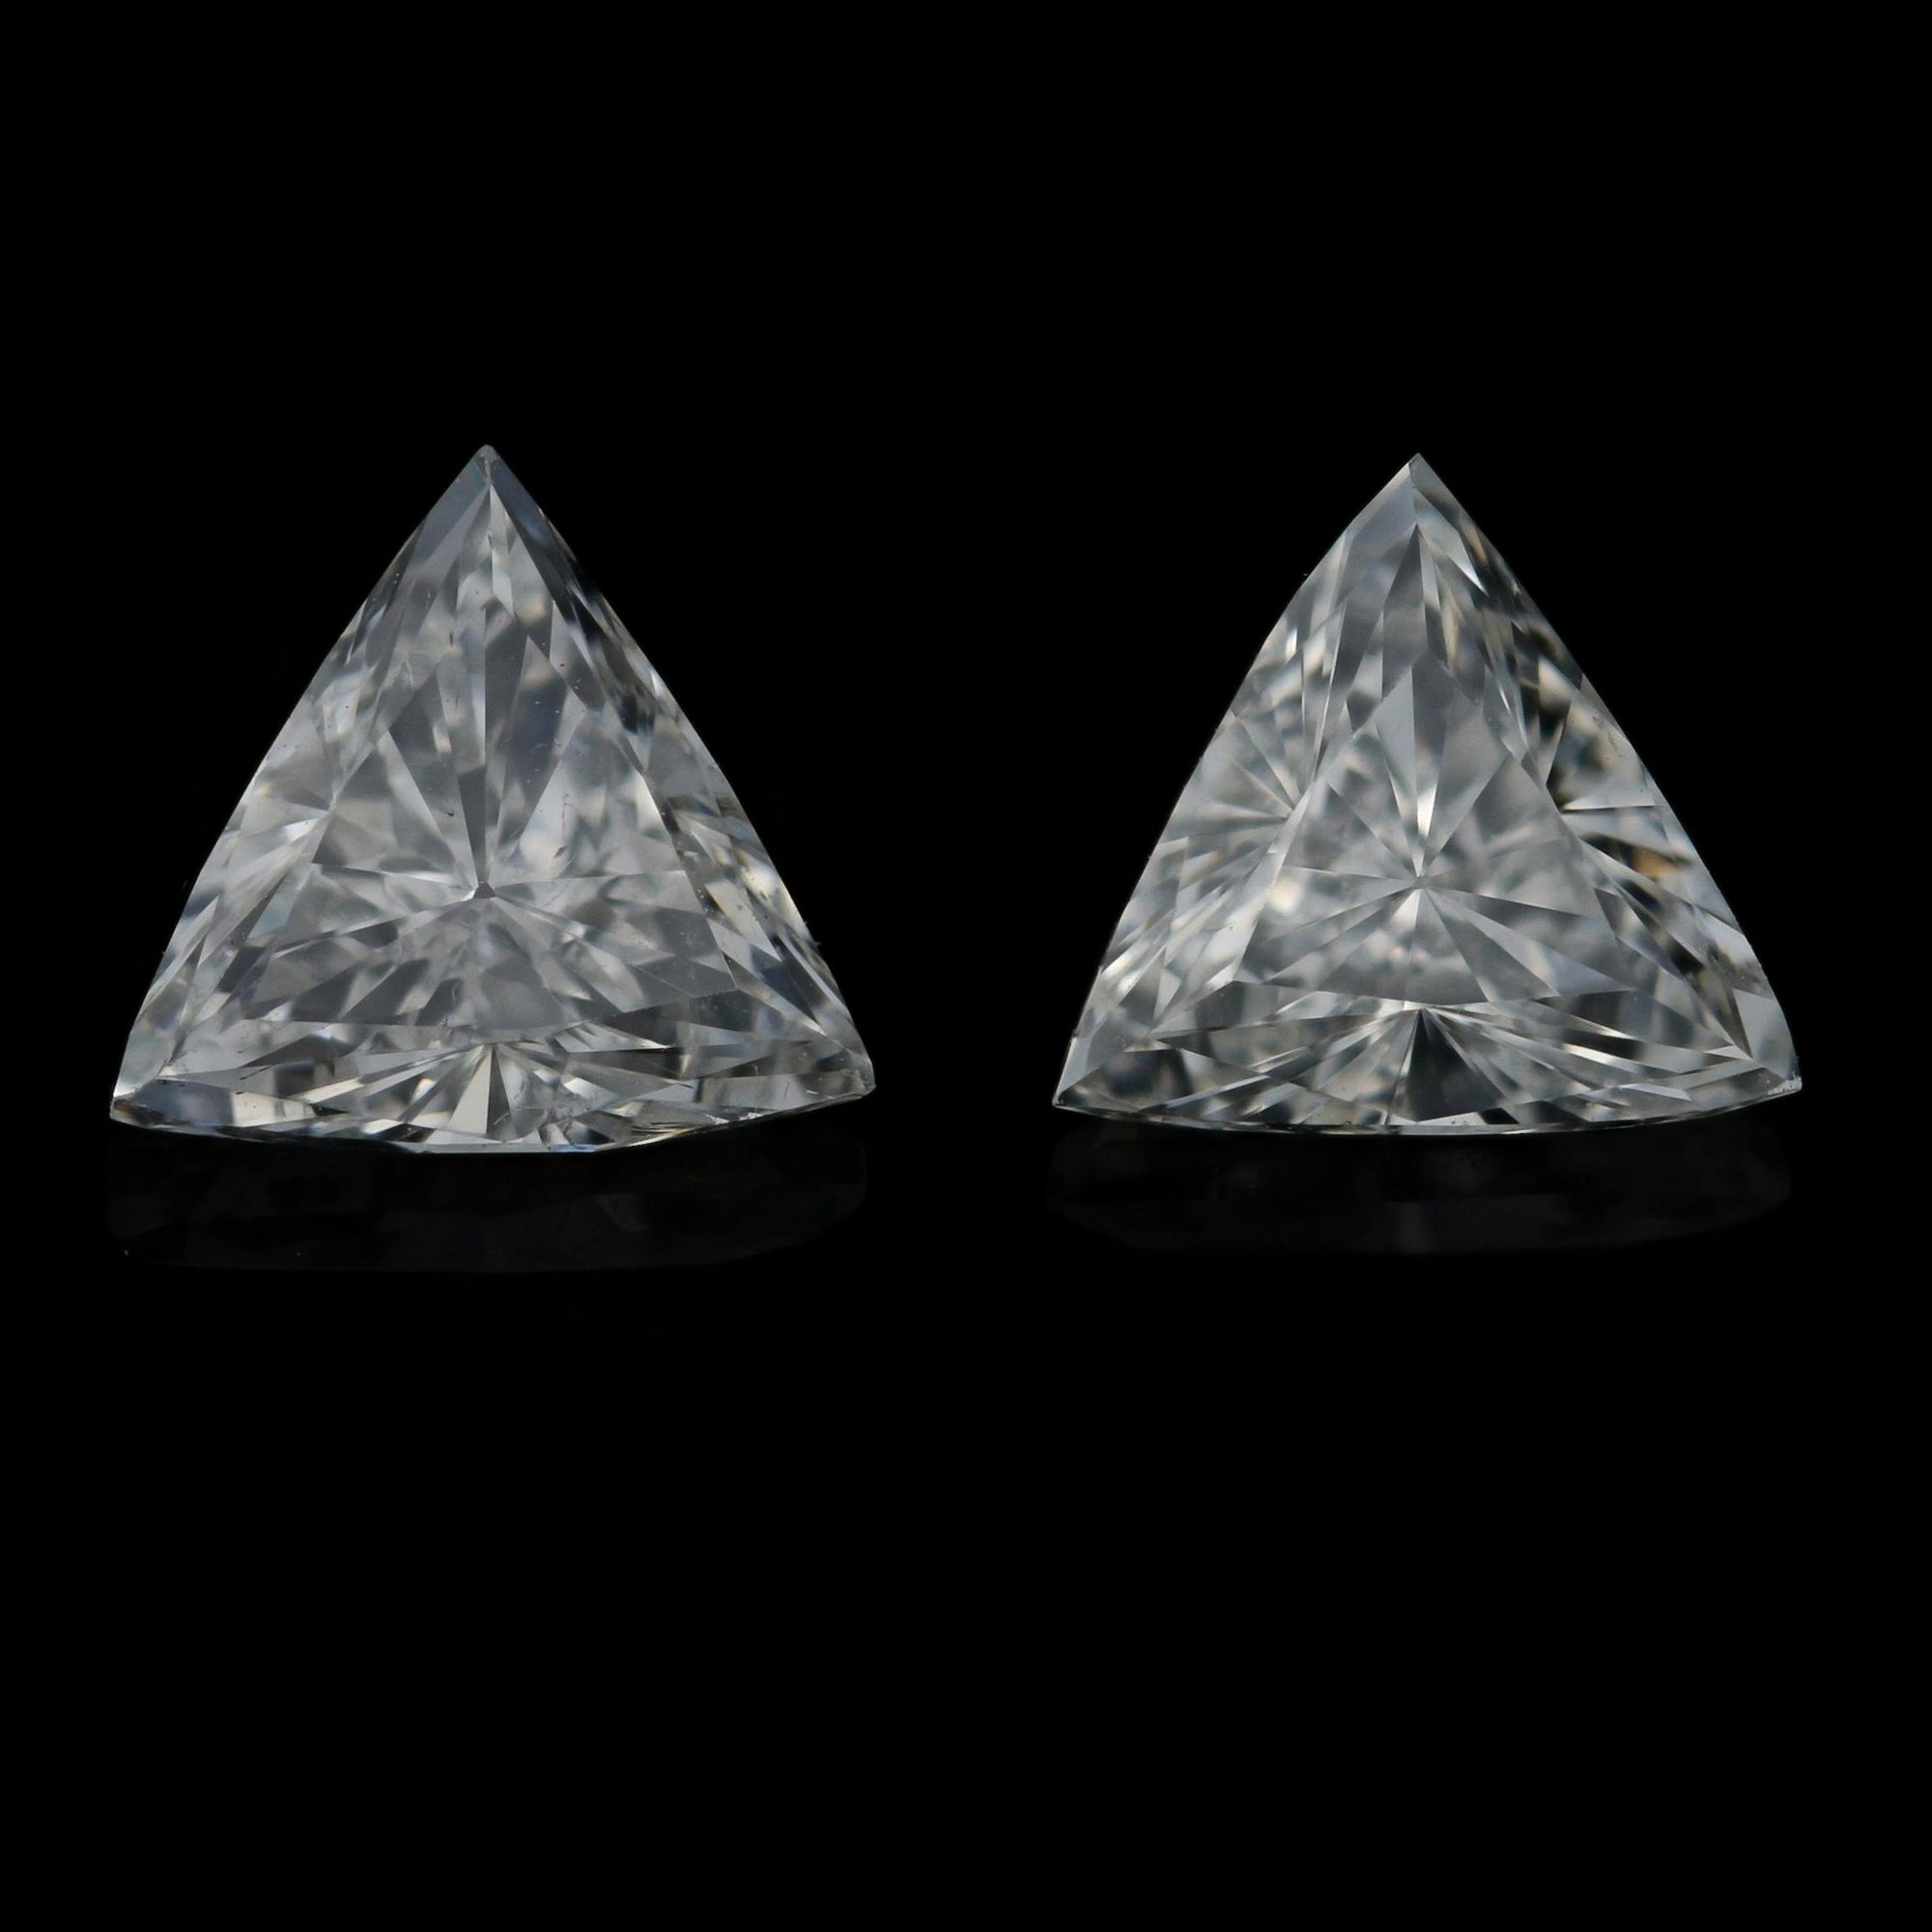 .95ctw Set of 2 Loose Diamonds Trillion